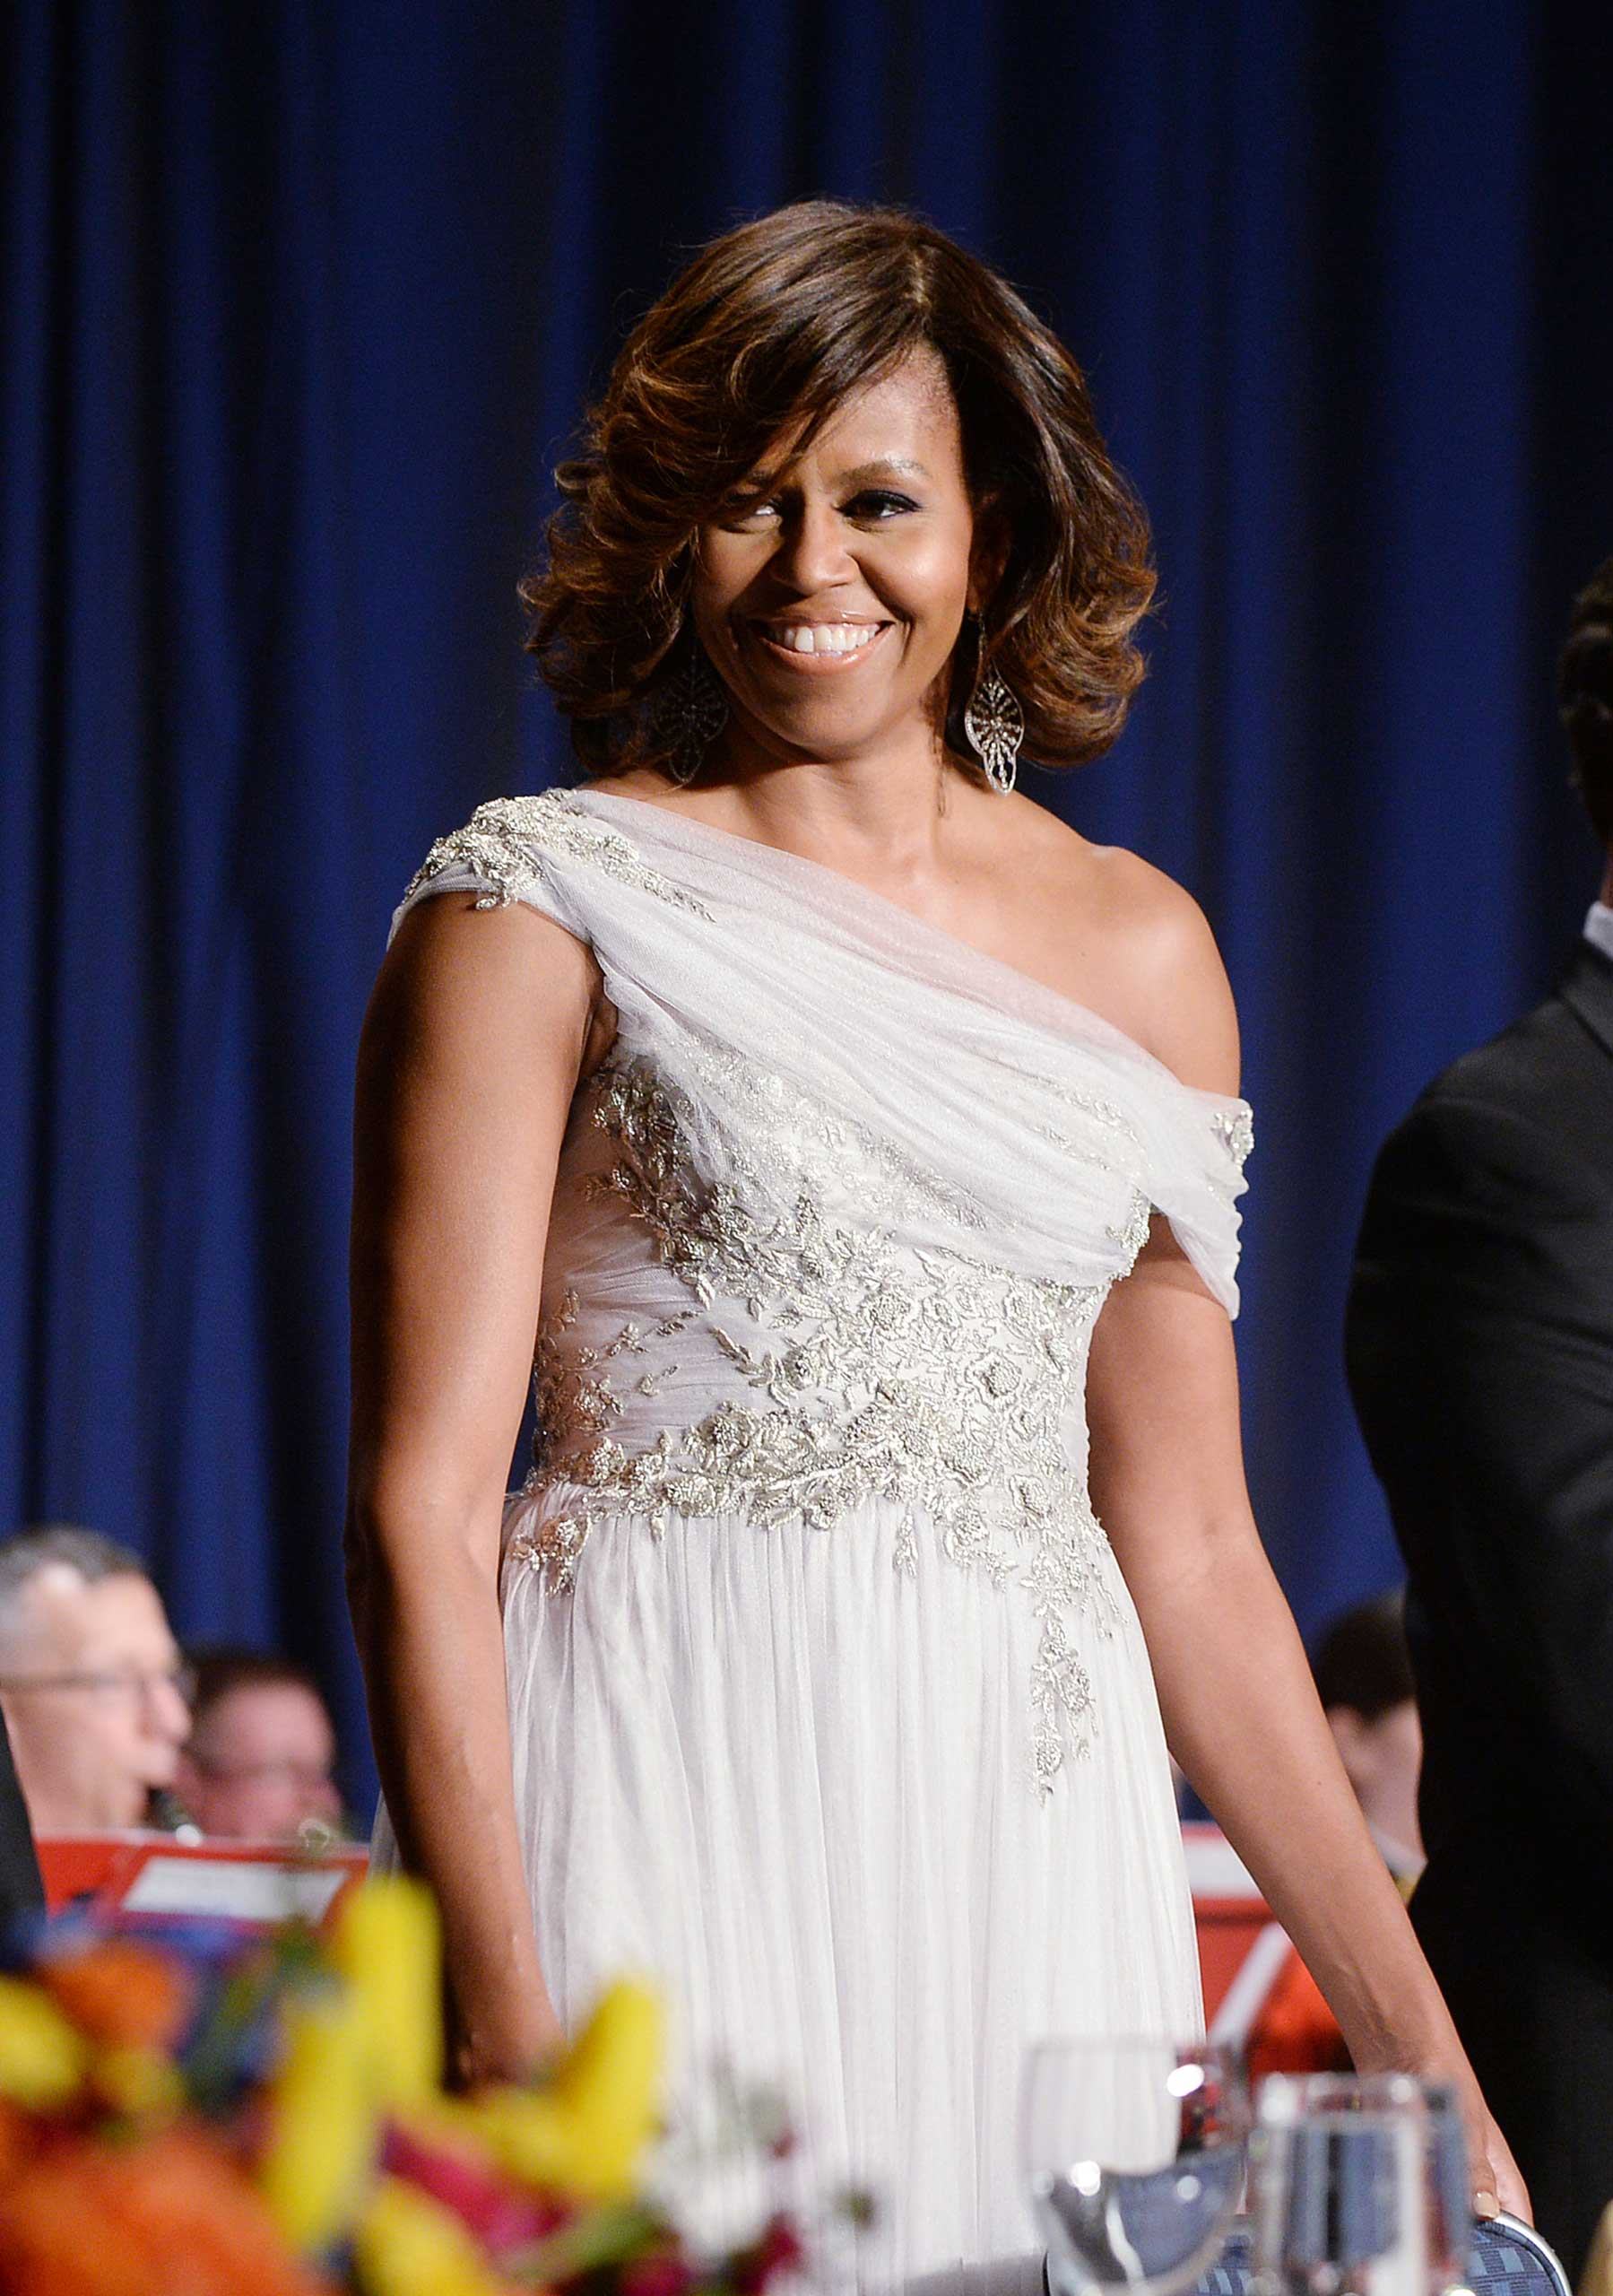 The White House Correspondents' Dinner is often jokingly called Nerd Prom, but Obama's choice of a grey tulle embroidered dress from Marchesa was neither nerdy nor prom-like.